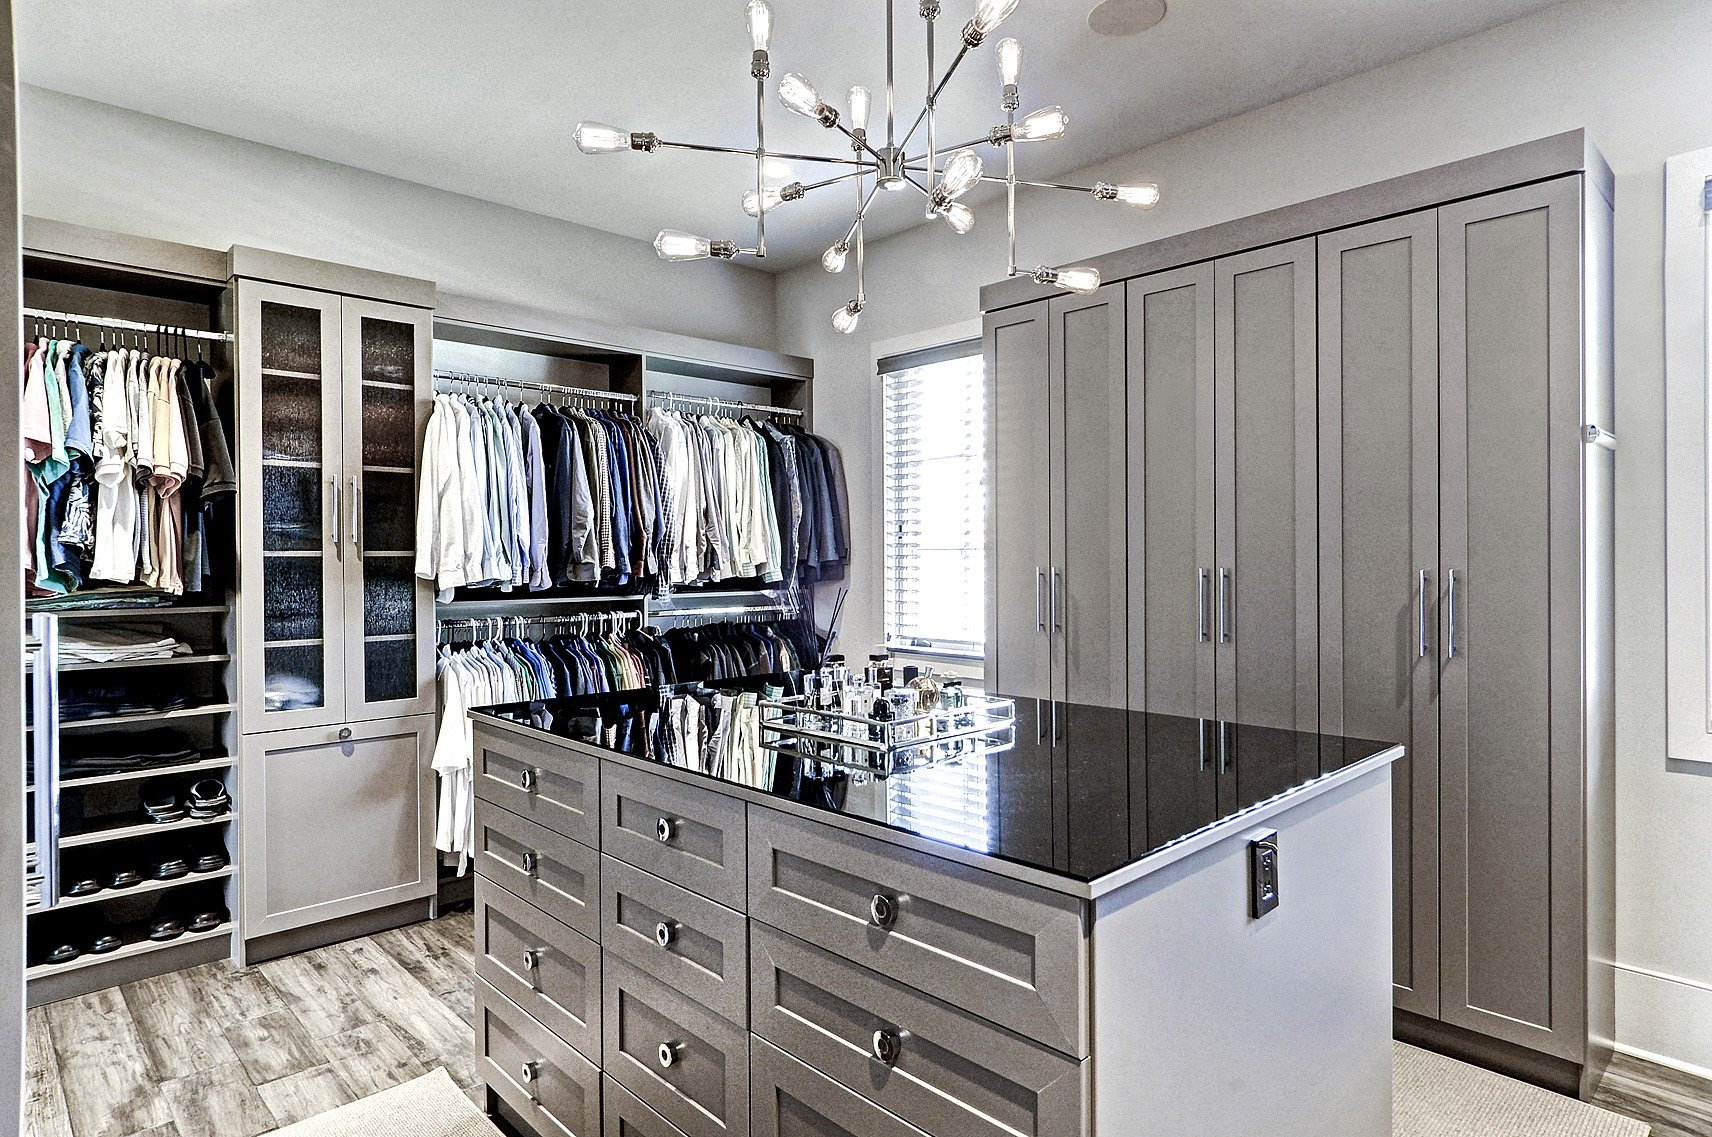 Walk-in closet with center island and organized shelves and cabinets